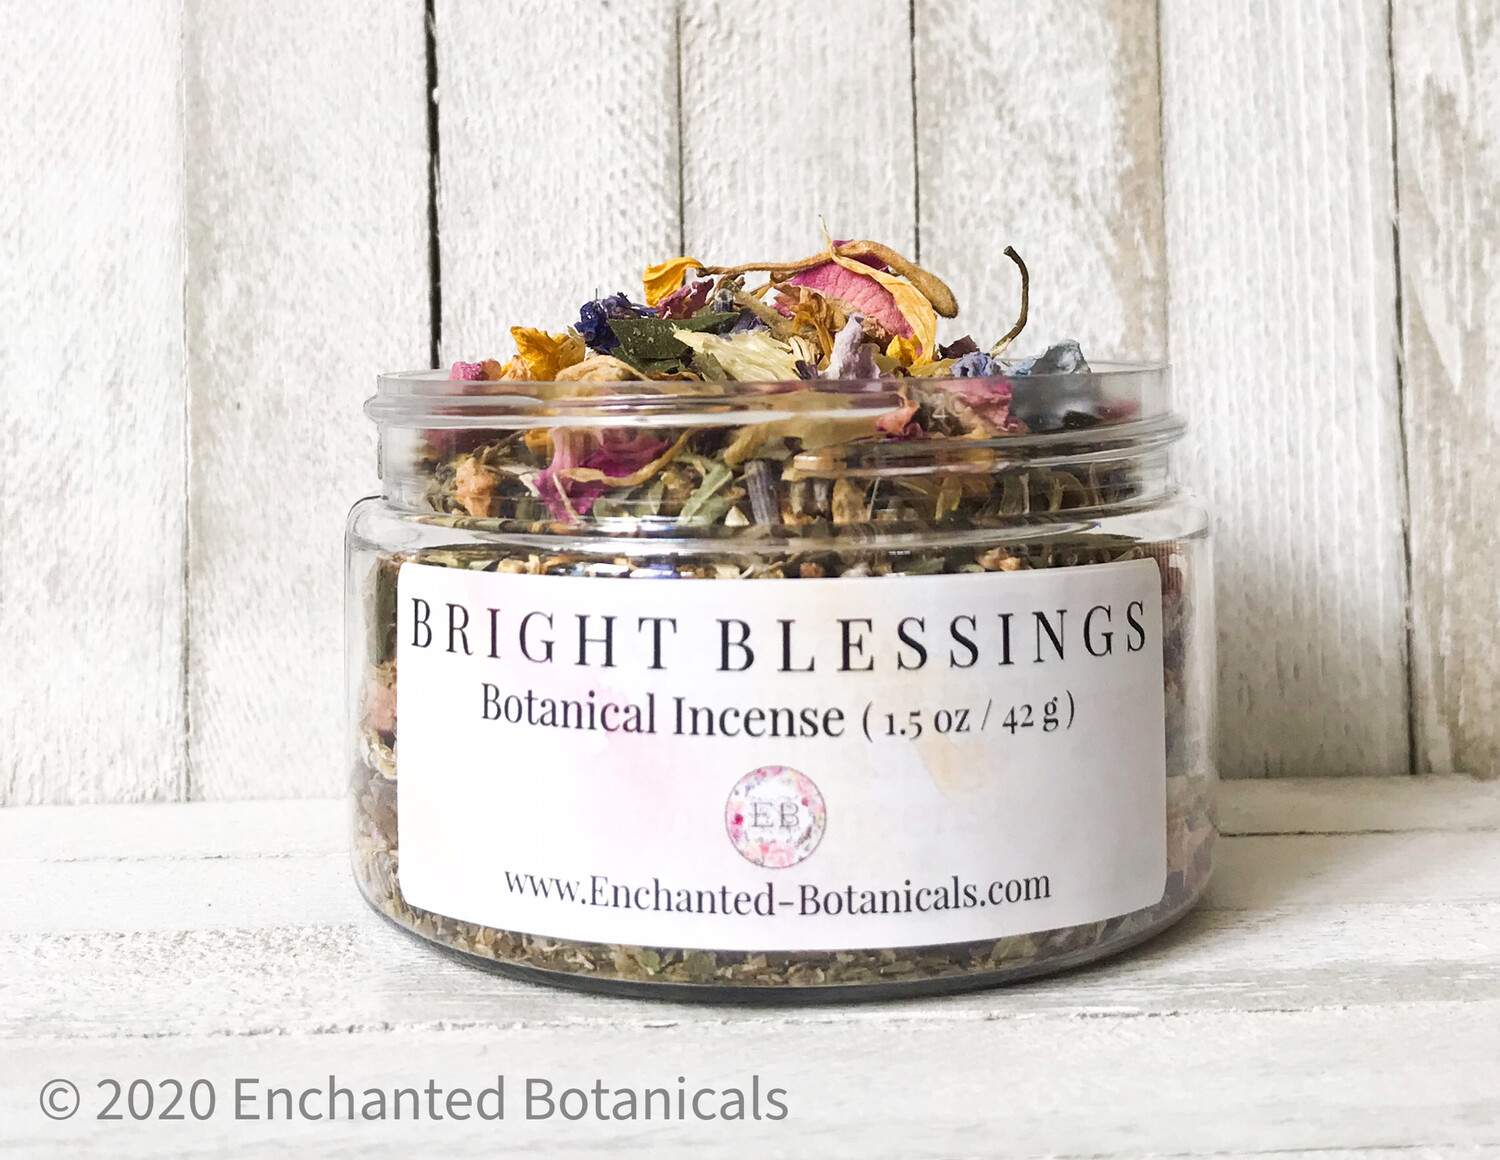 BRIGHT BLESSINGS Botanical Incense